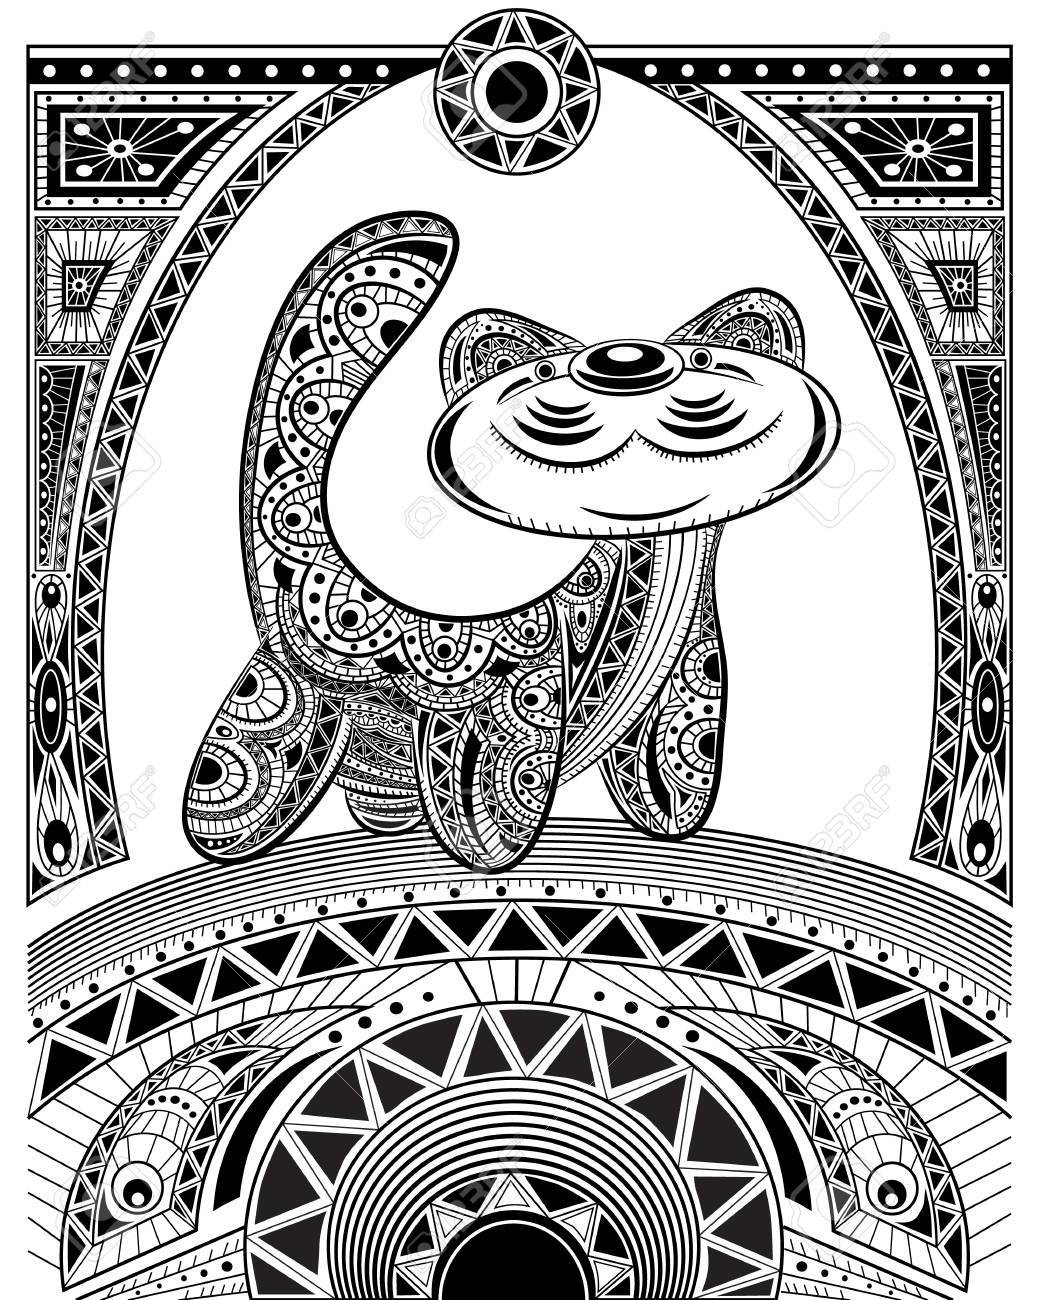 Stylized Vector Cat Zentangle Isolated For Relax And Meditation Collection Of Animals Your